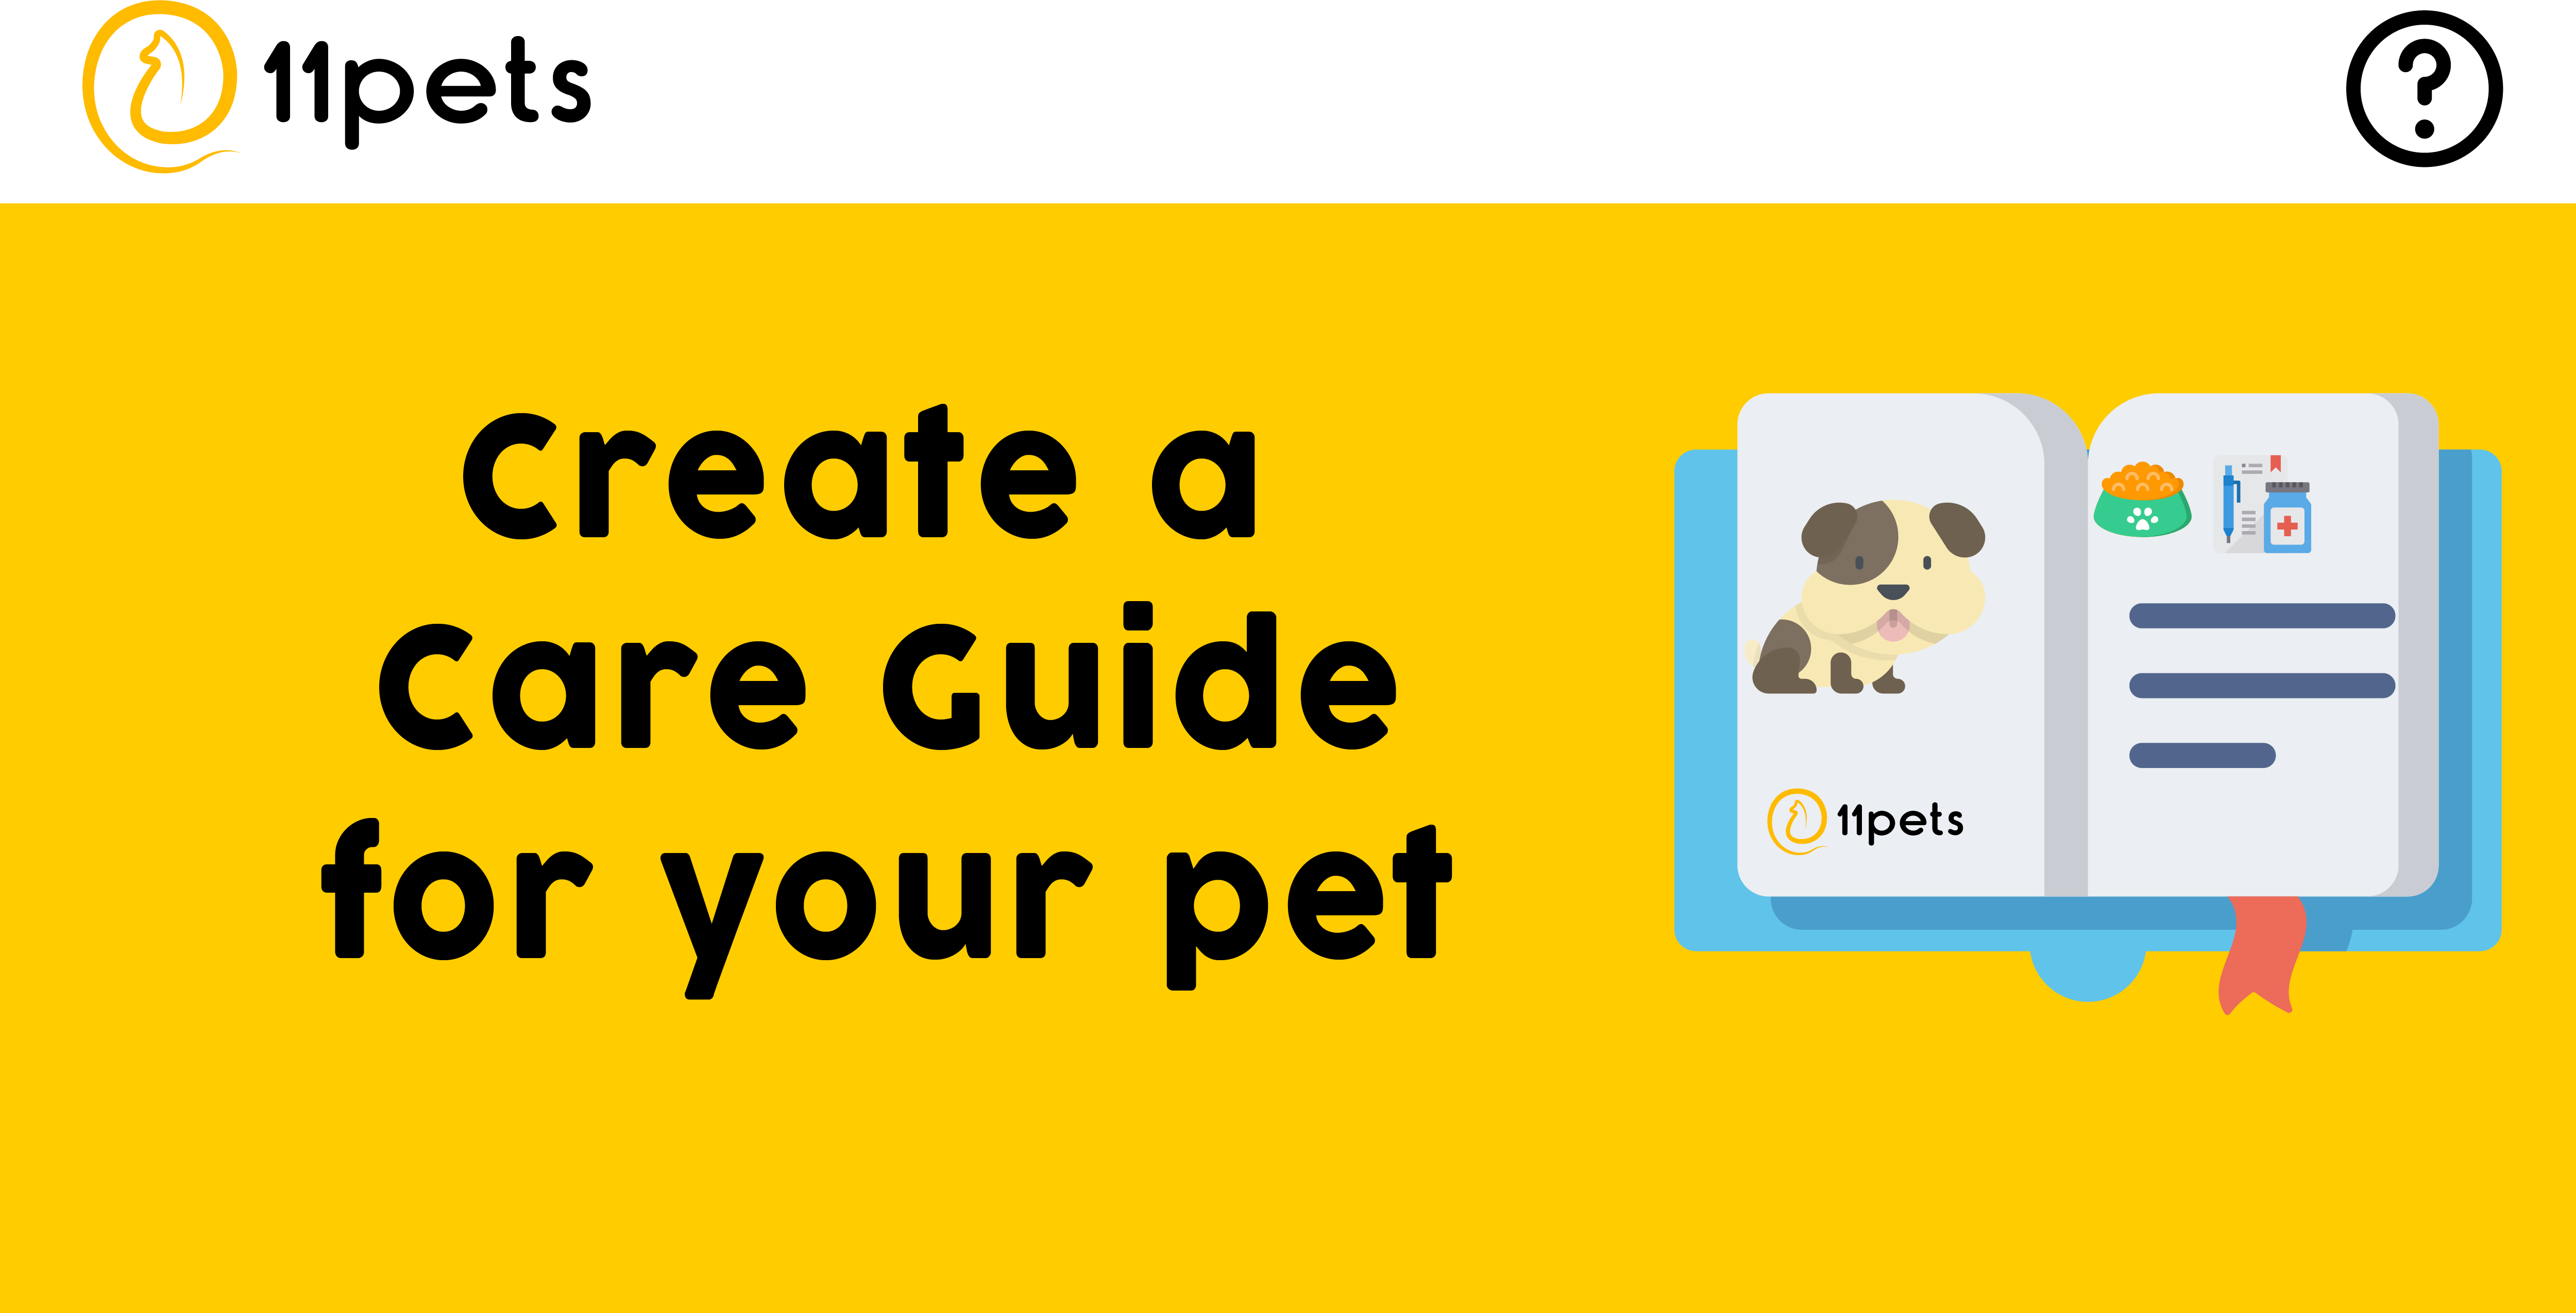 11pets Care Guide